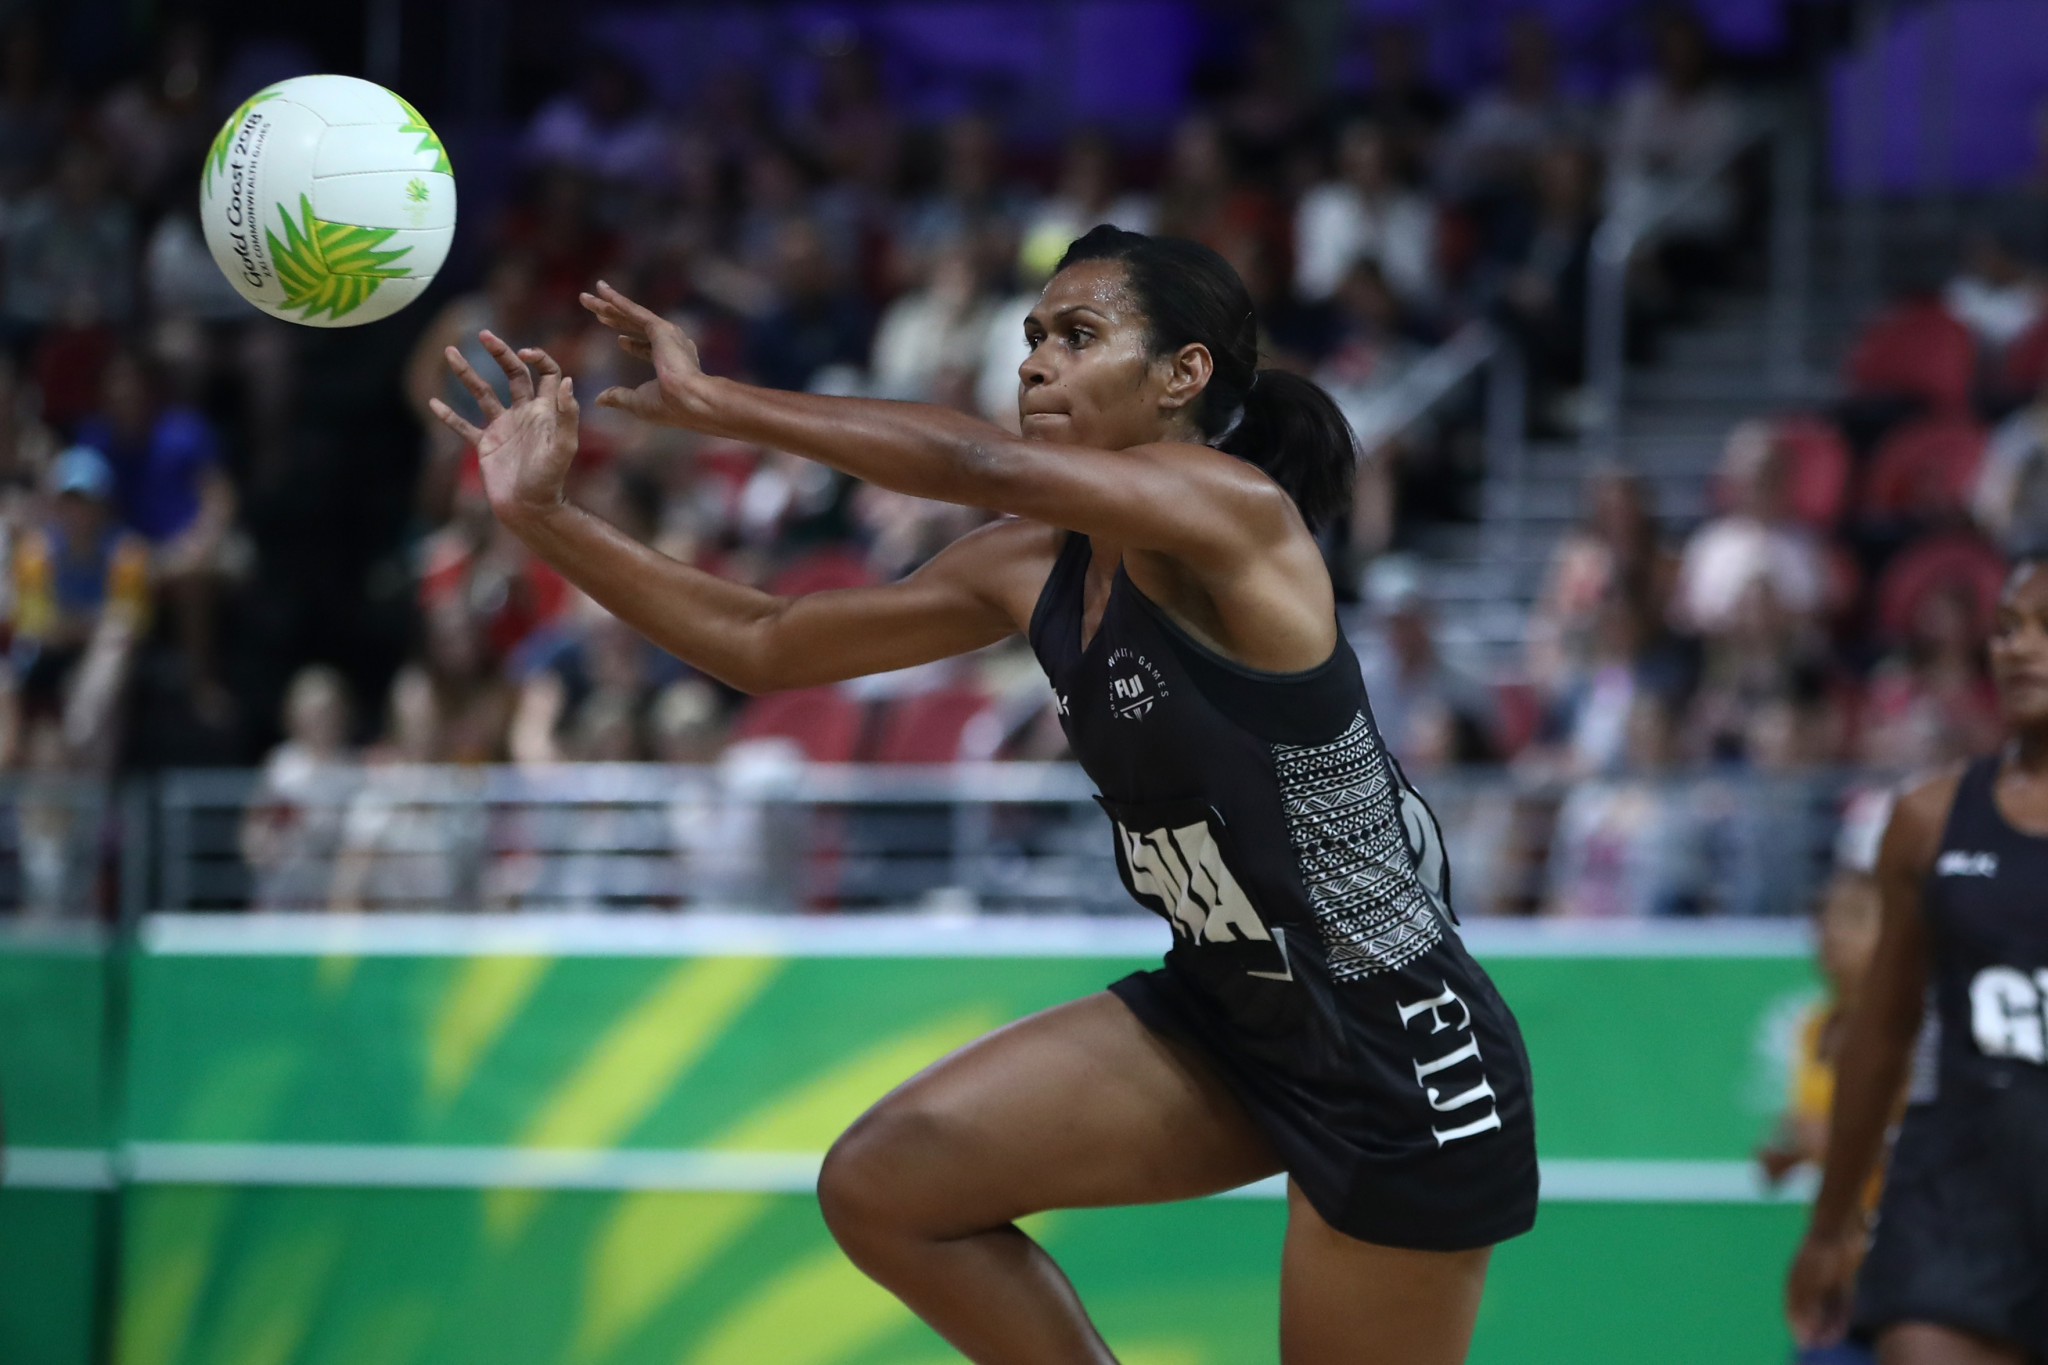 Fiji qualified for the Gold Coast 2028 Commonwealth Games, as well as the 2019 World Cup in England ©Getty Images